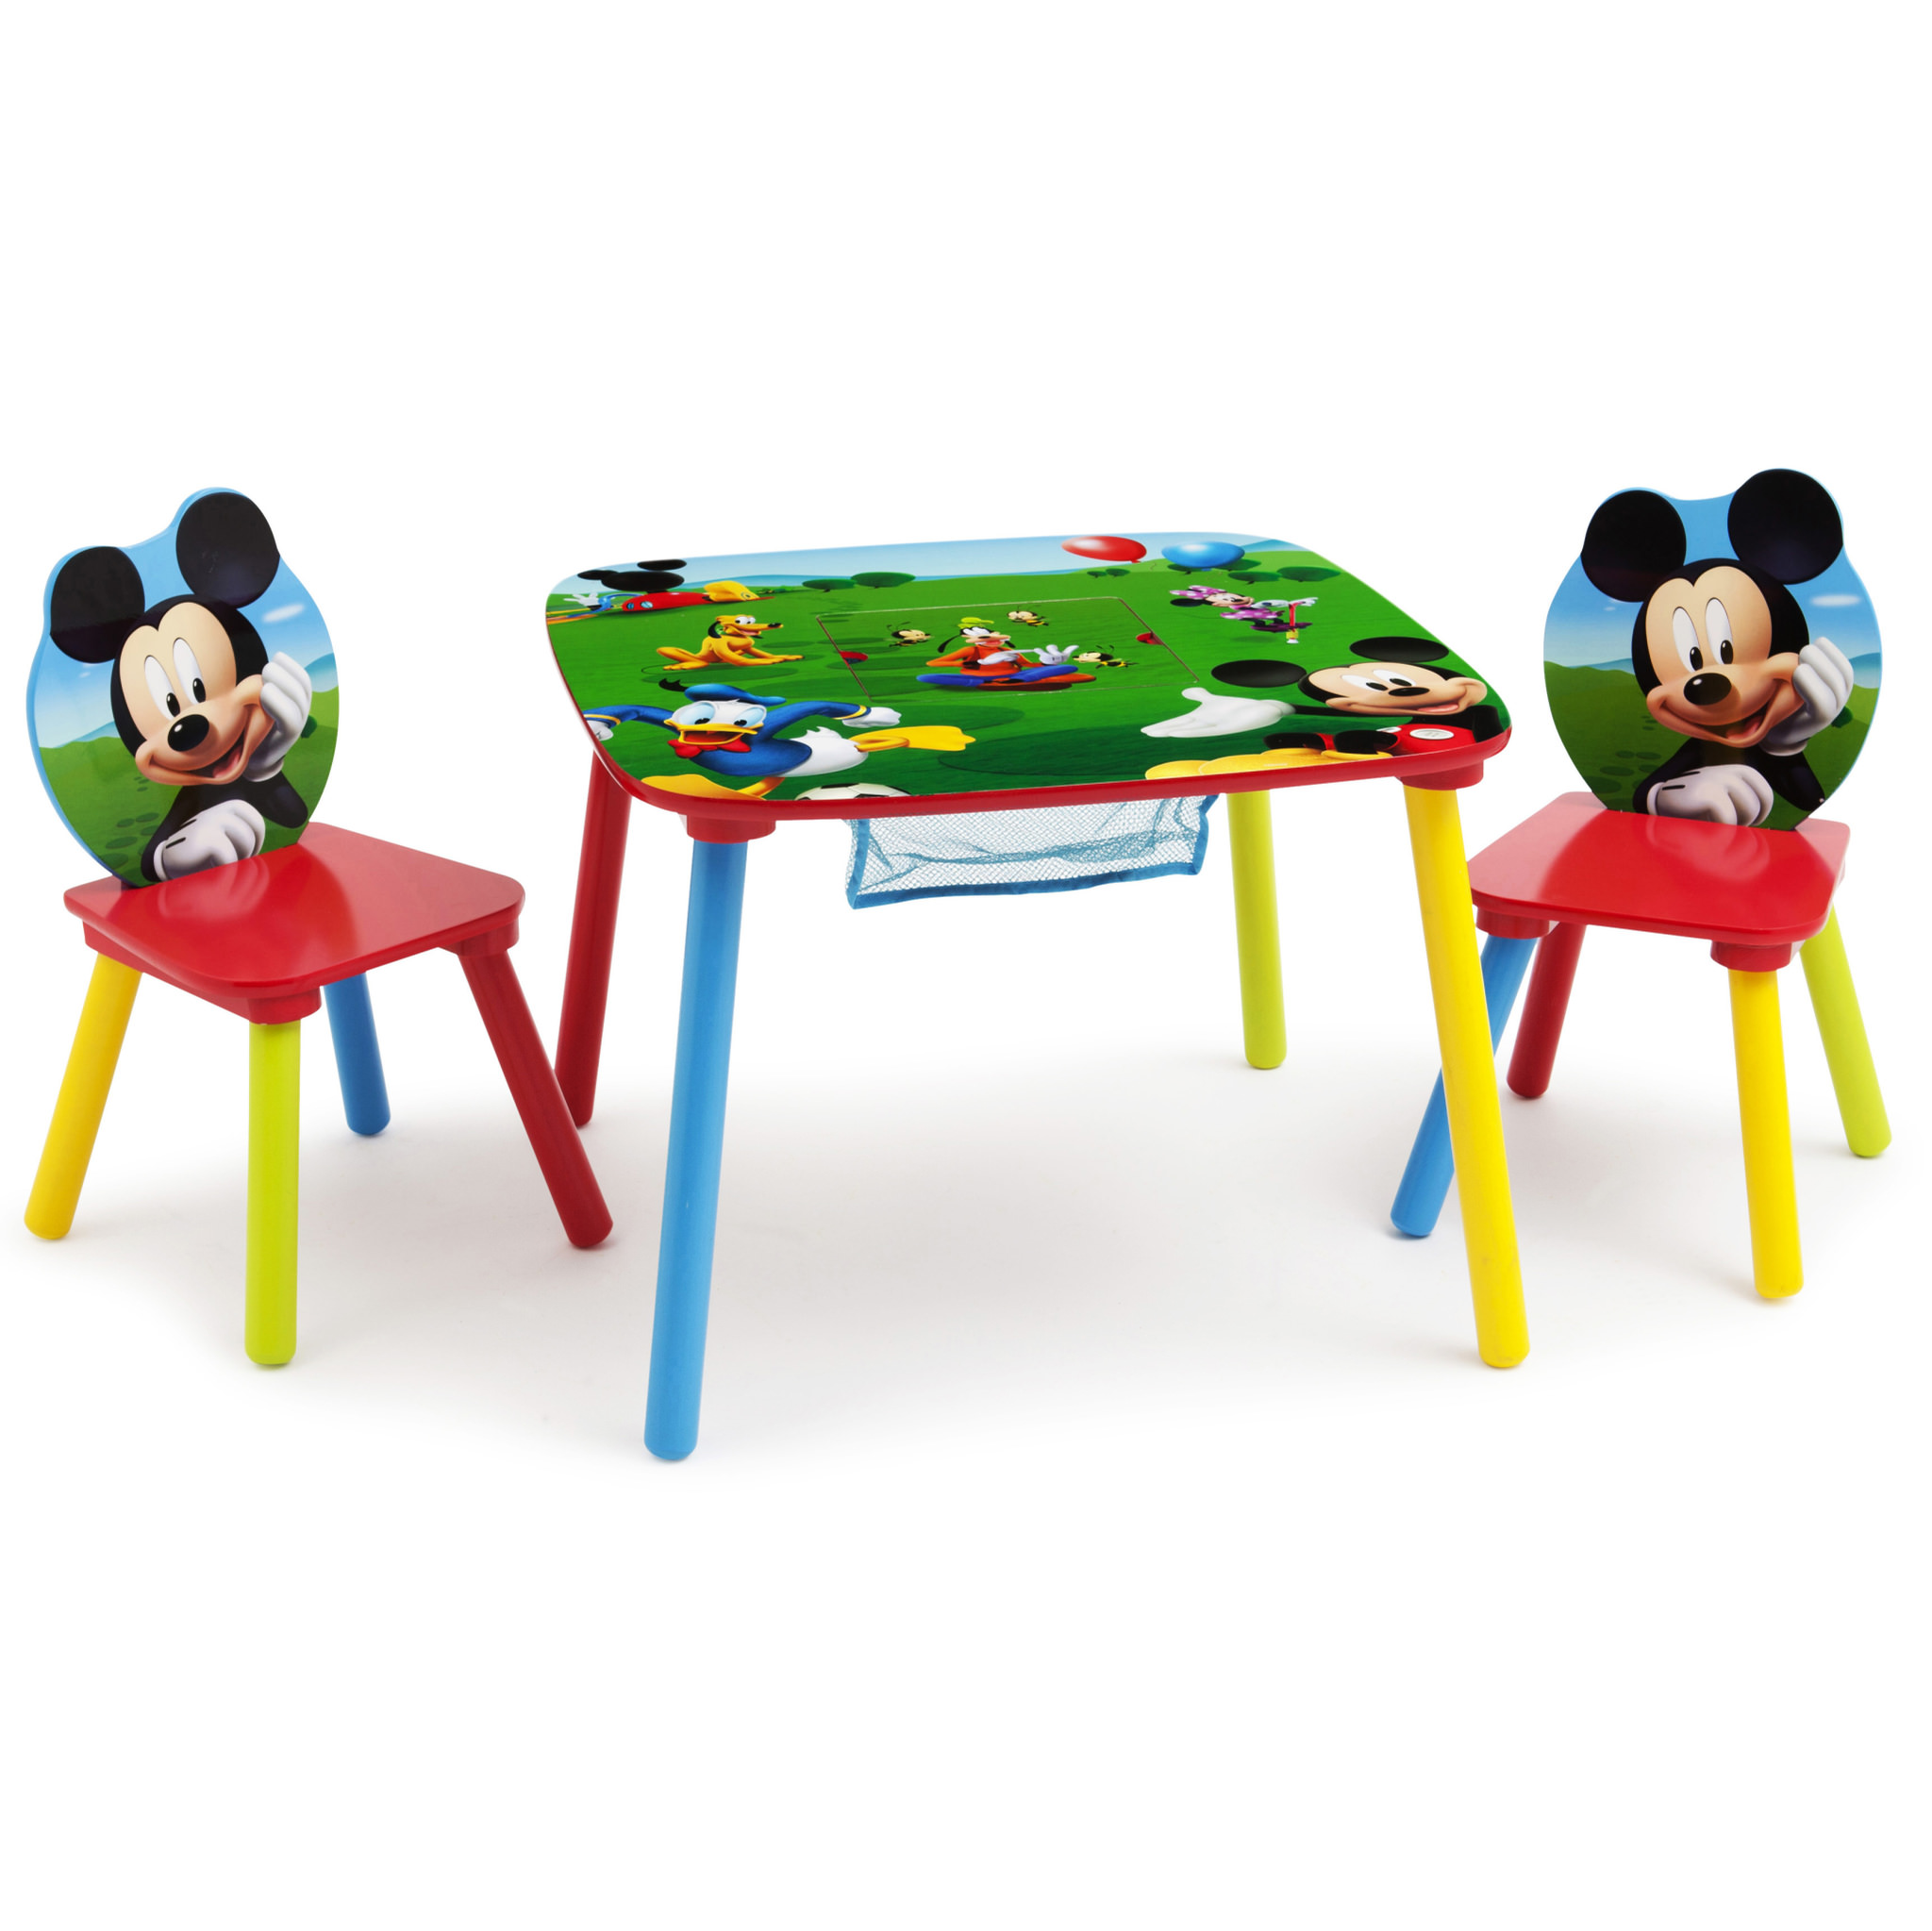 Mickey Mouse Toddler Table and Chair Set with Storage